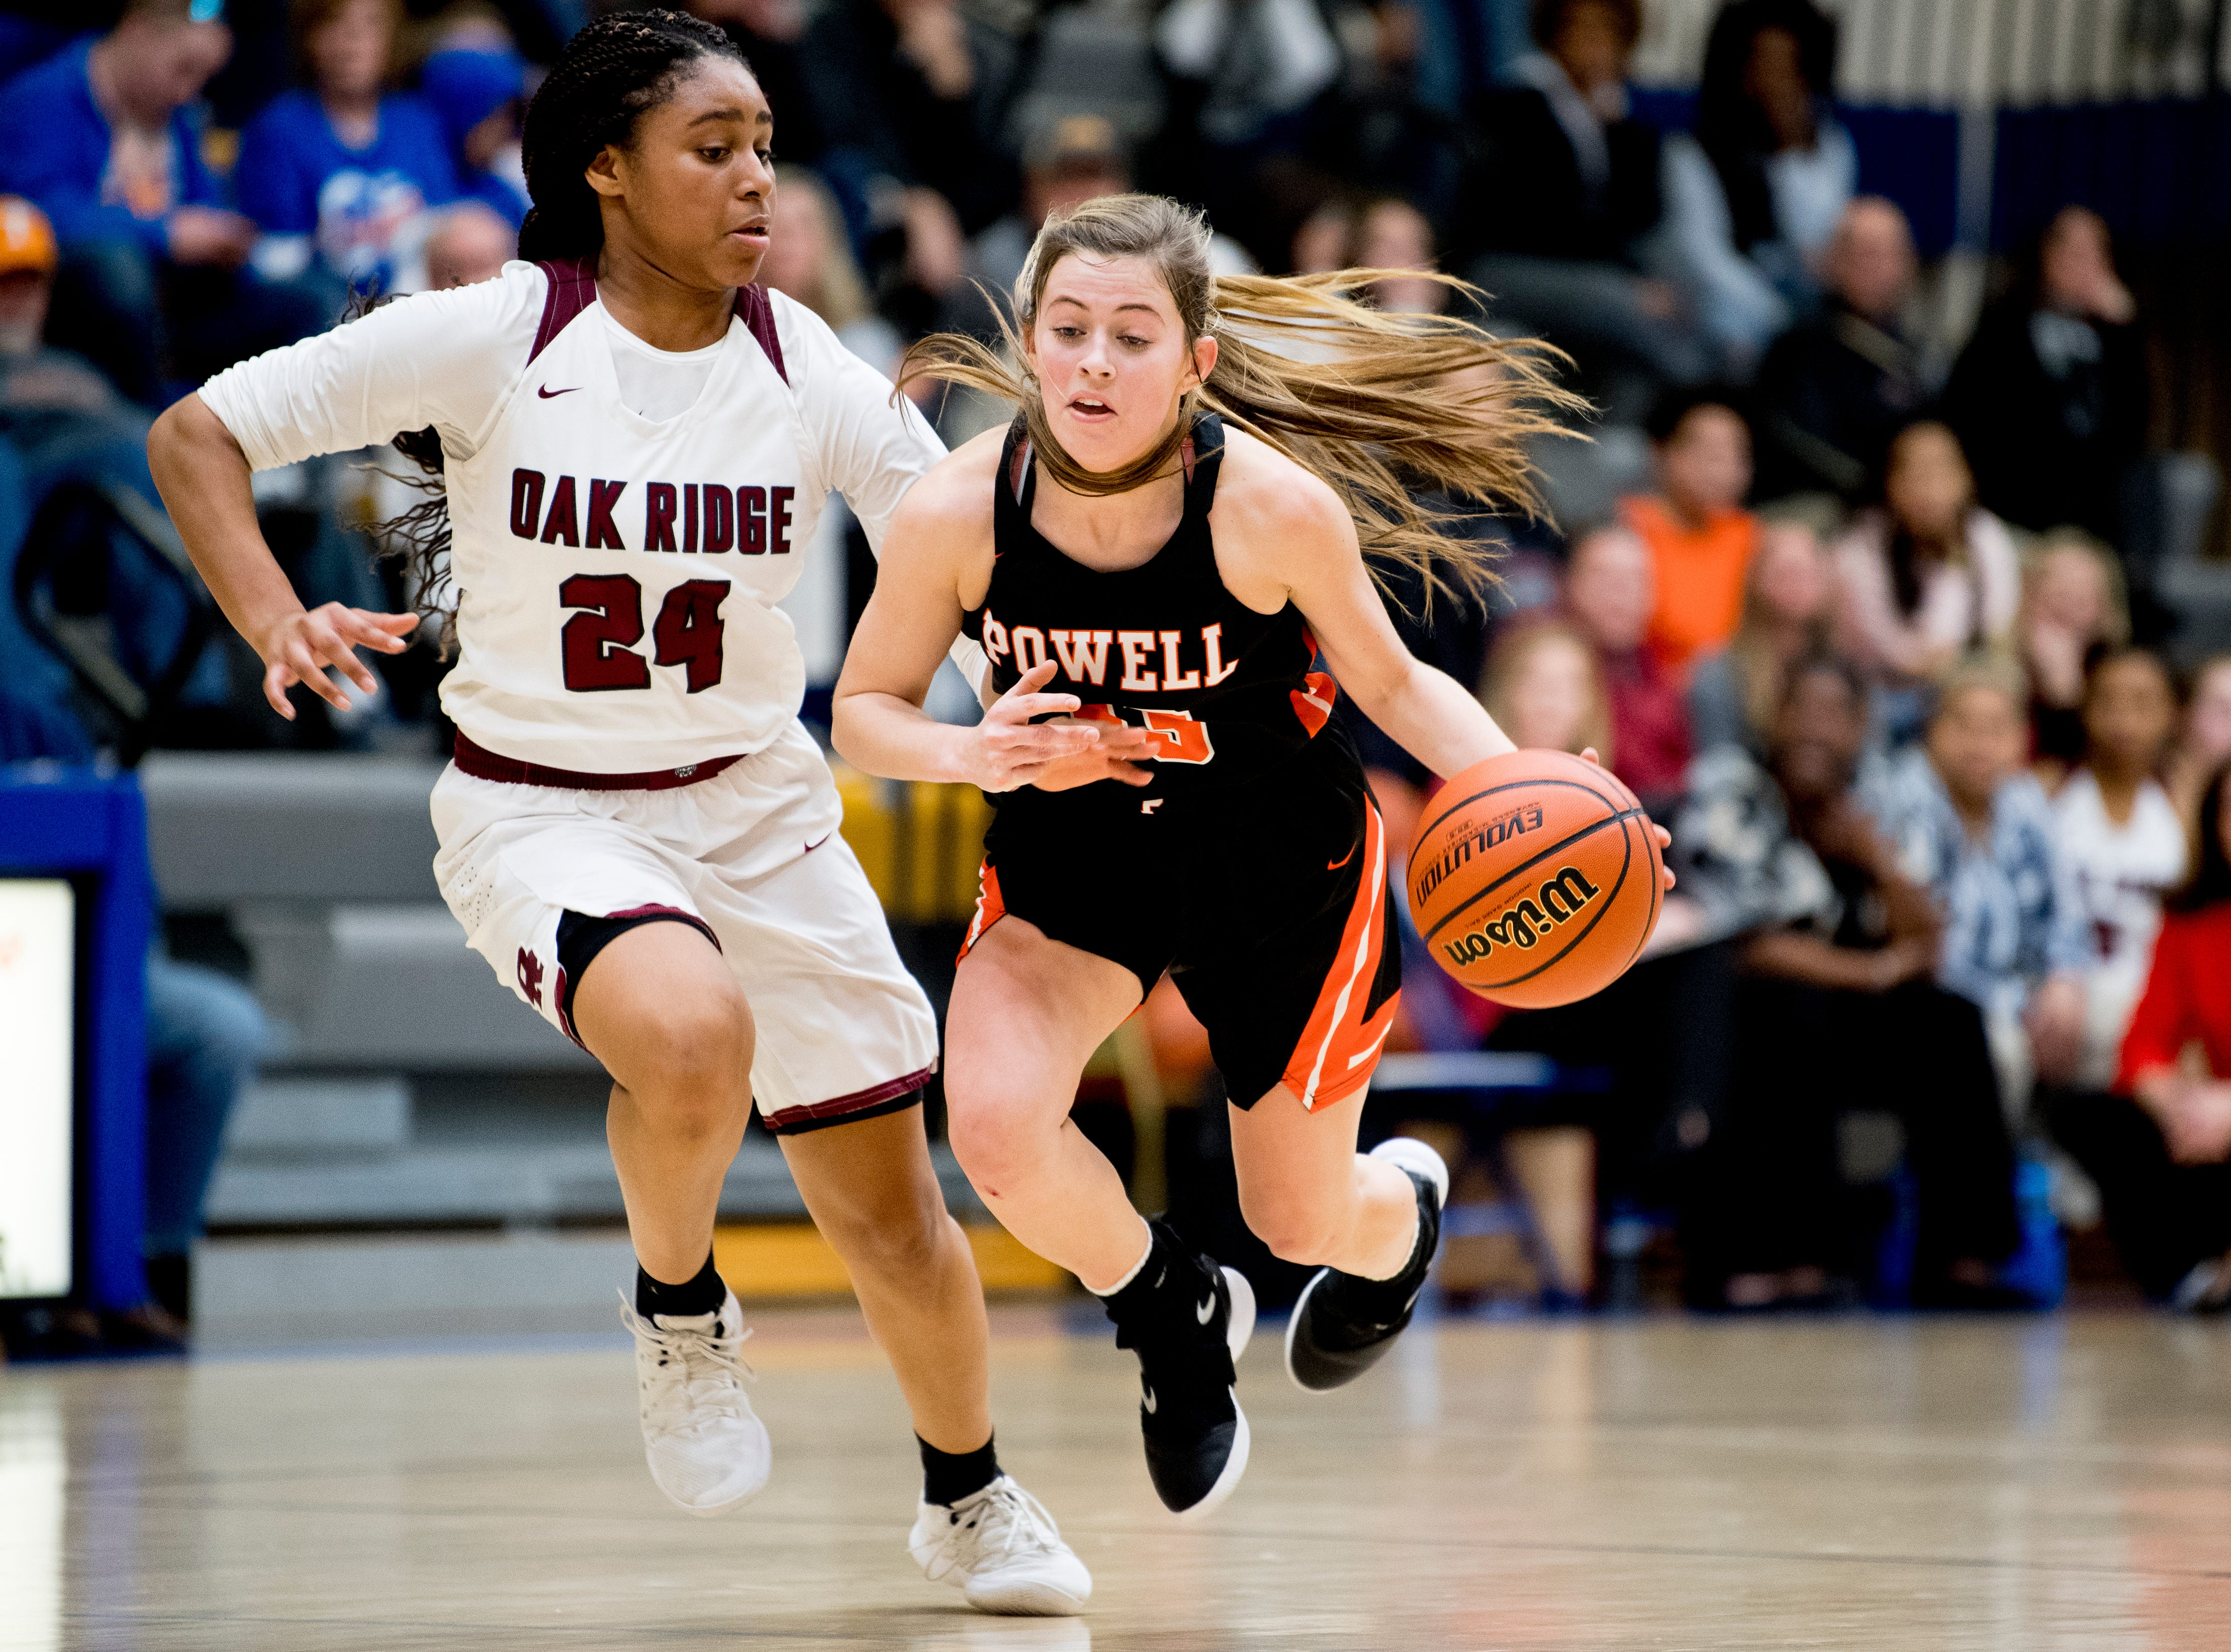 Oak Ridge's Jada Guinn (24) bumps into Powell's Savanna Parker (33), knocking her over, during a game between semifinal game between Oak Ridge and Powell at Karns High School in Knoxville, Tennessee on Saturday, February 16, 2019.